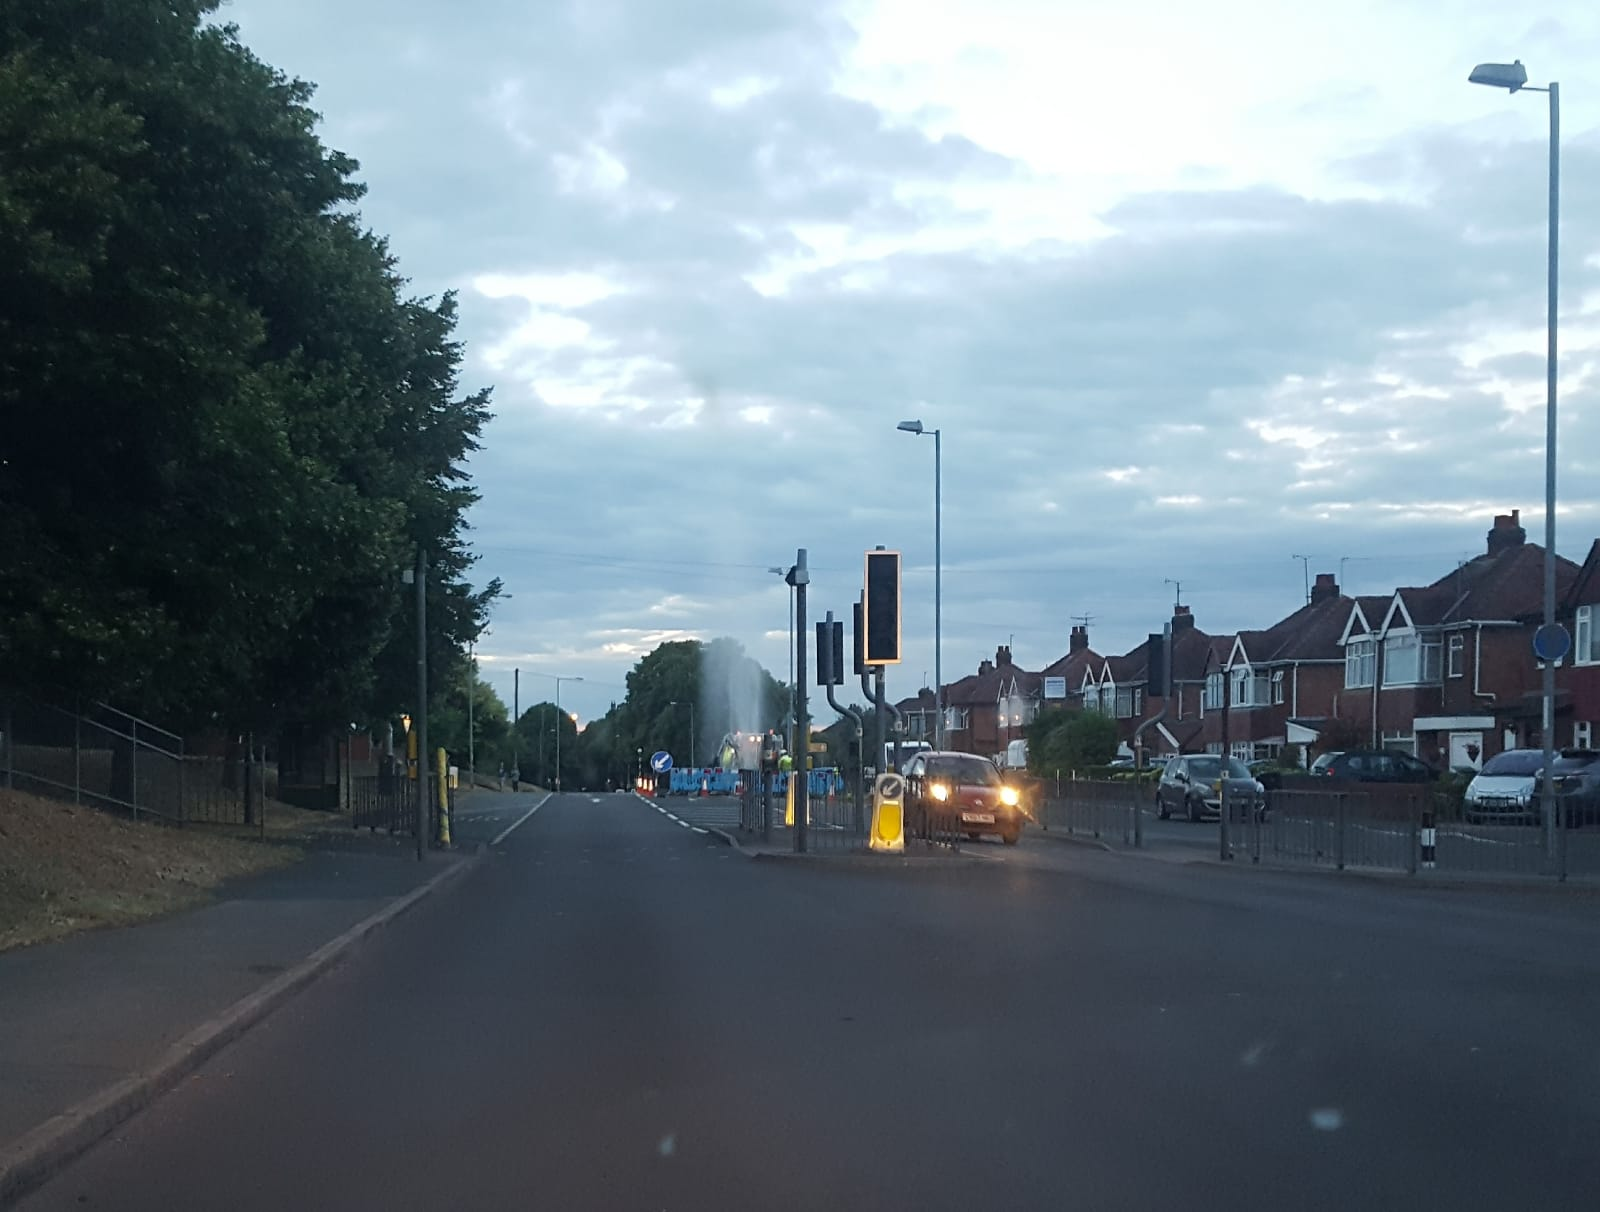 Ross Road traffic lights causing delays